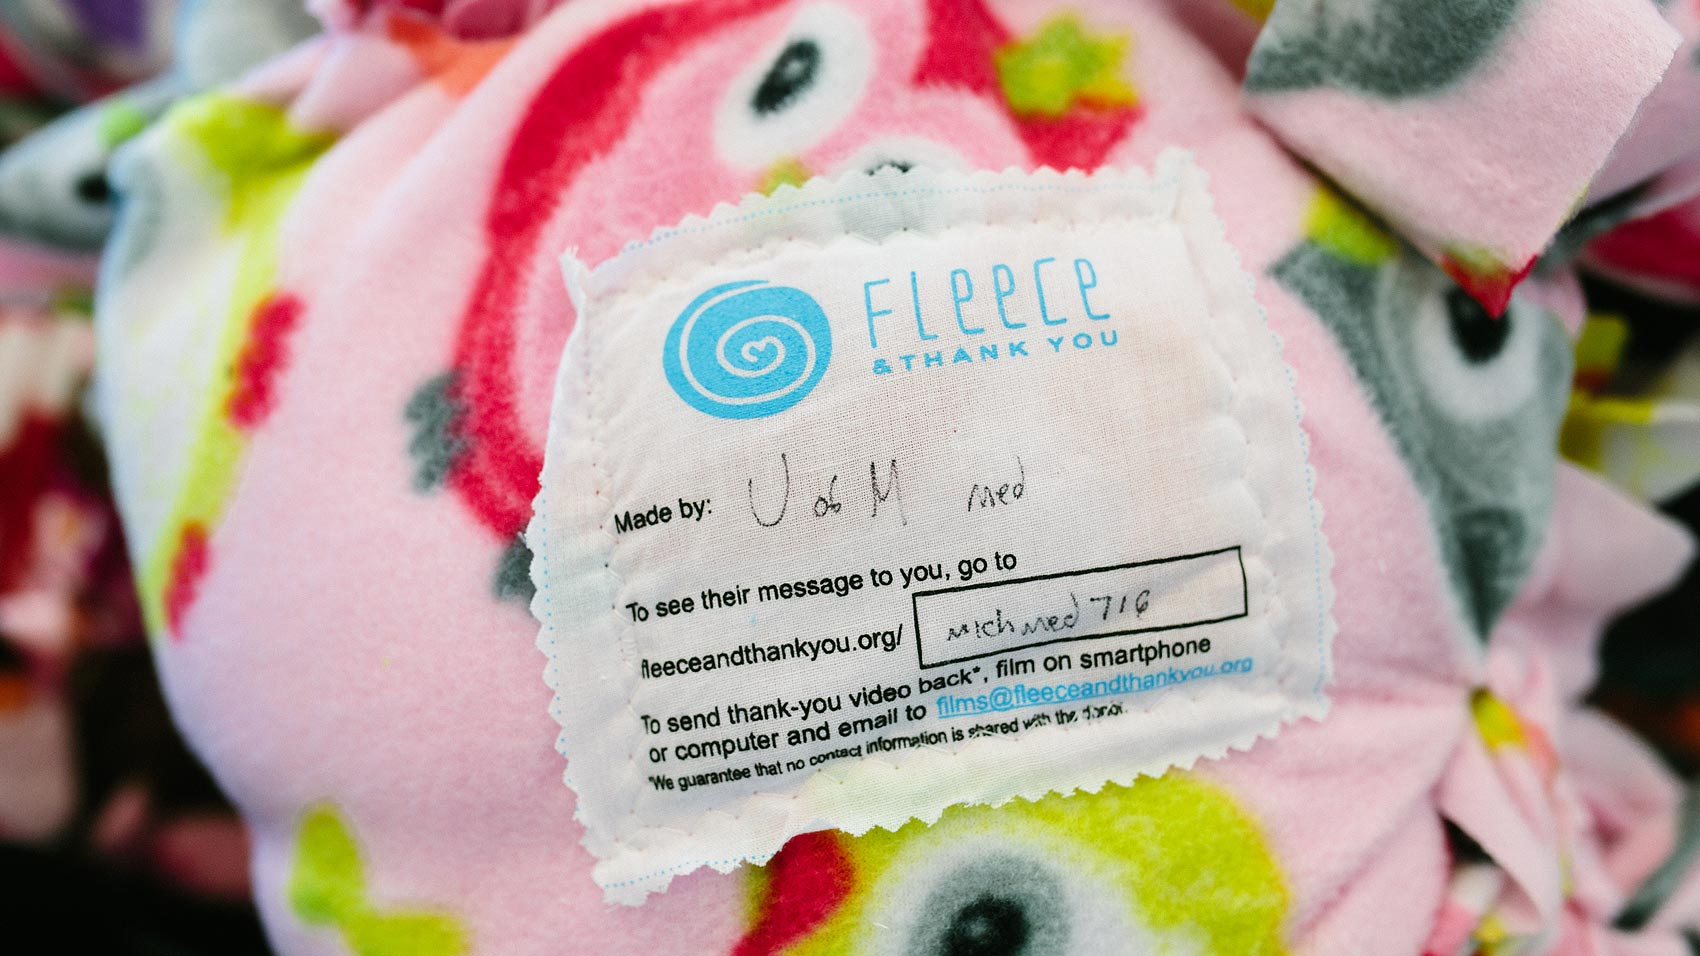 A personalized fleece blanket tag from Fleece & Thank You